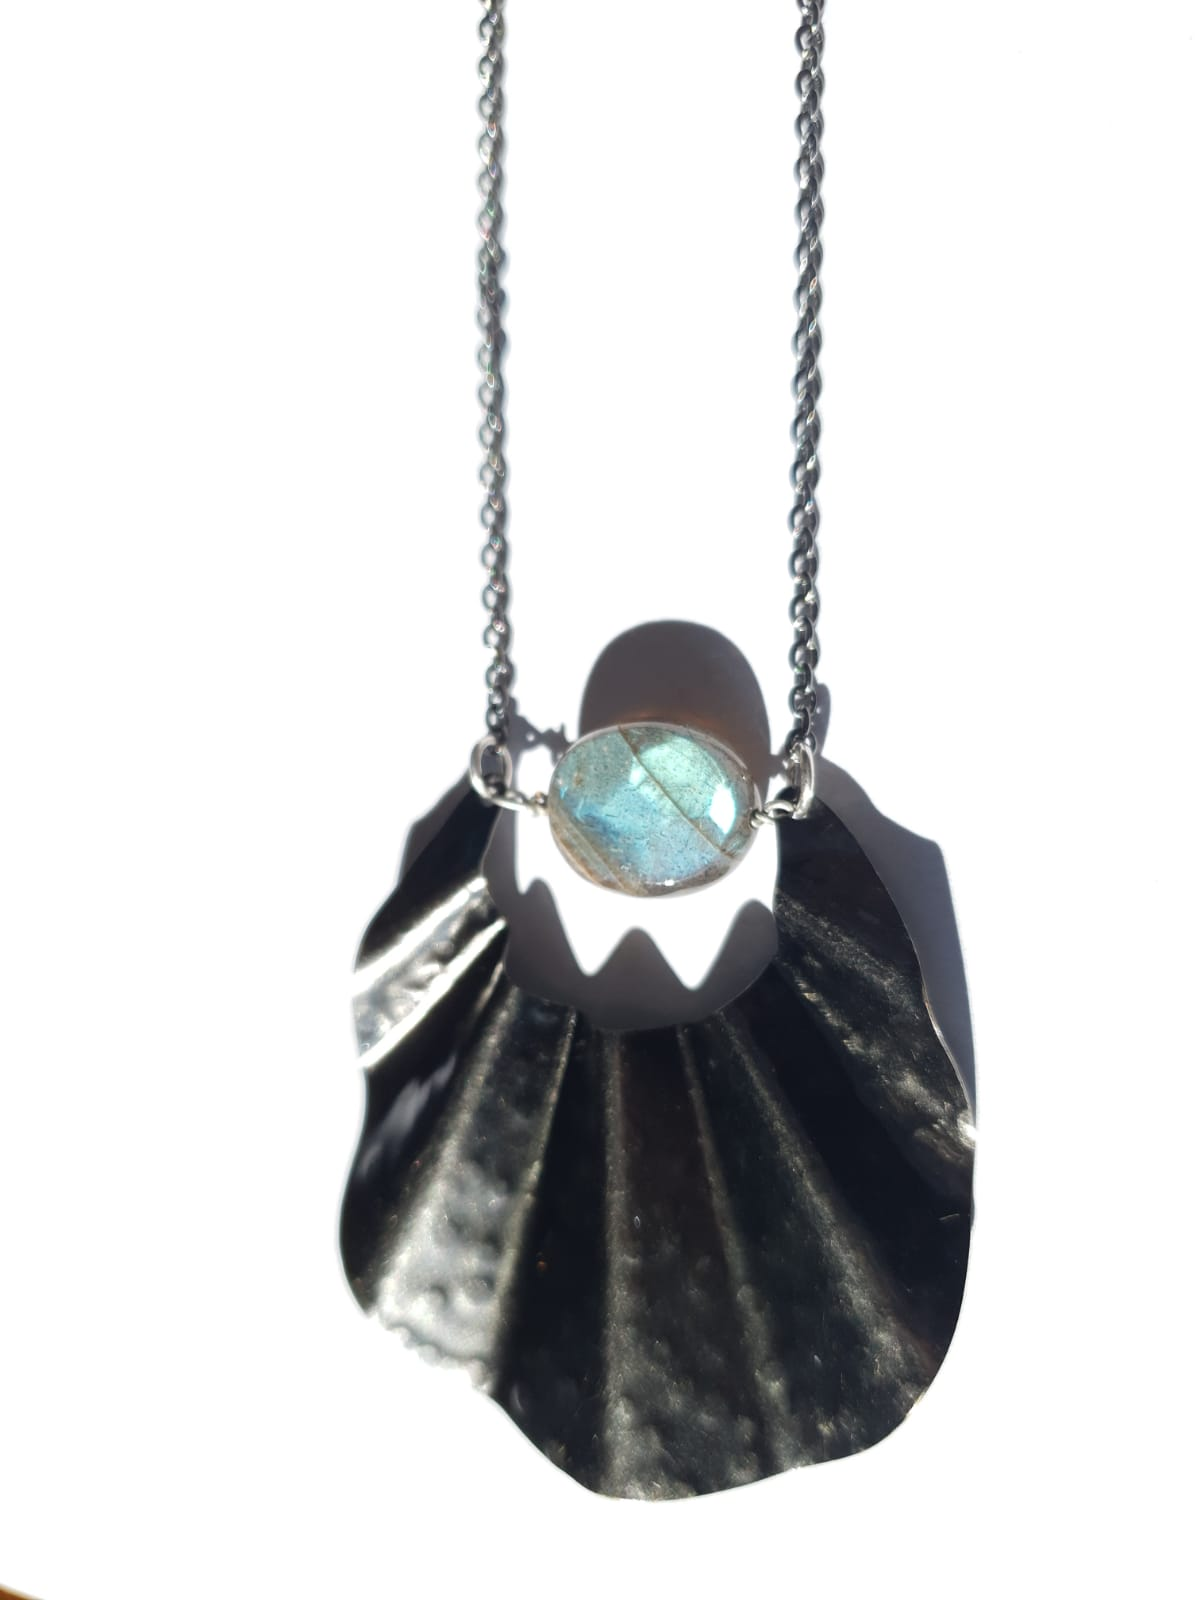 Dark Fin with Labradorite Necklace